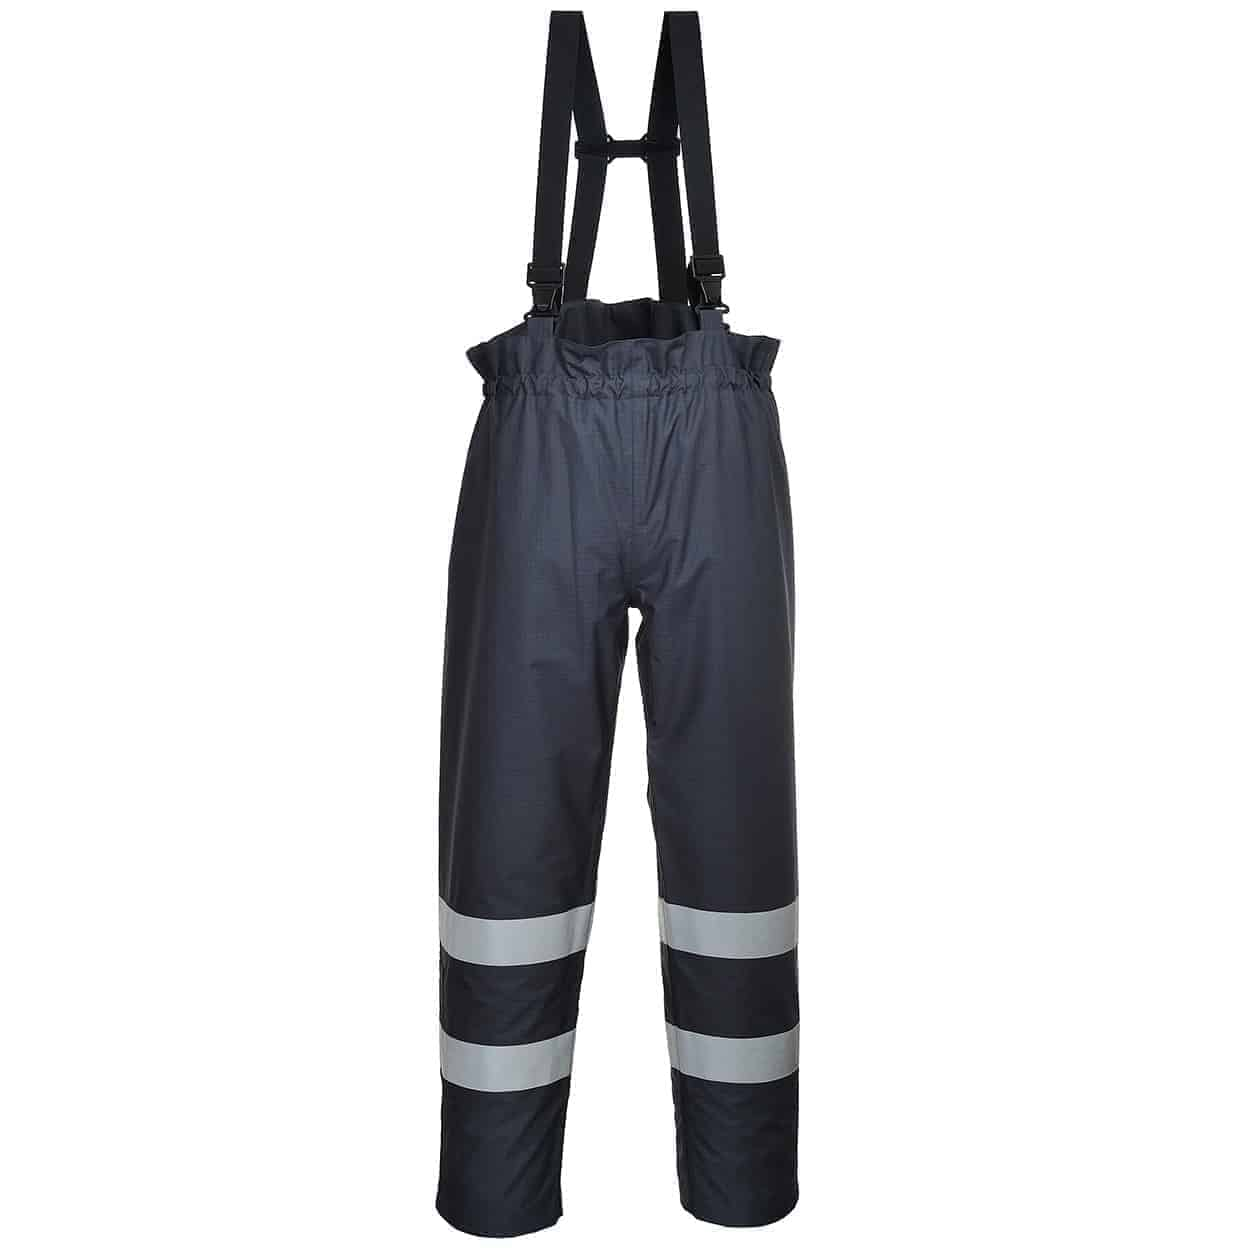 MULTI-PROTECTION TROUSER